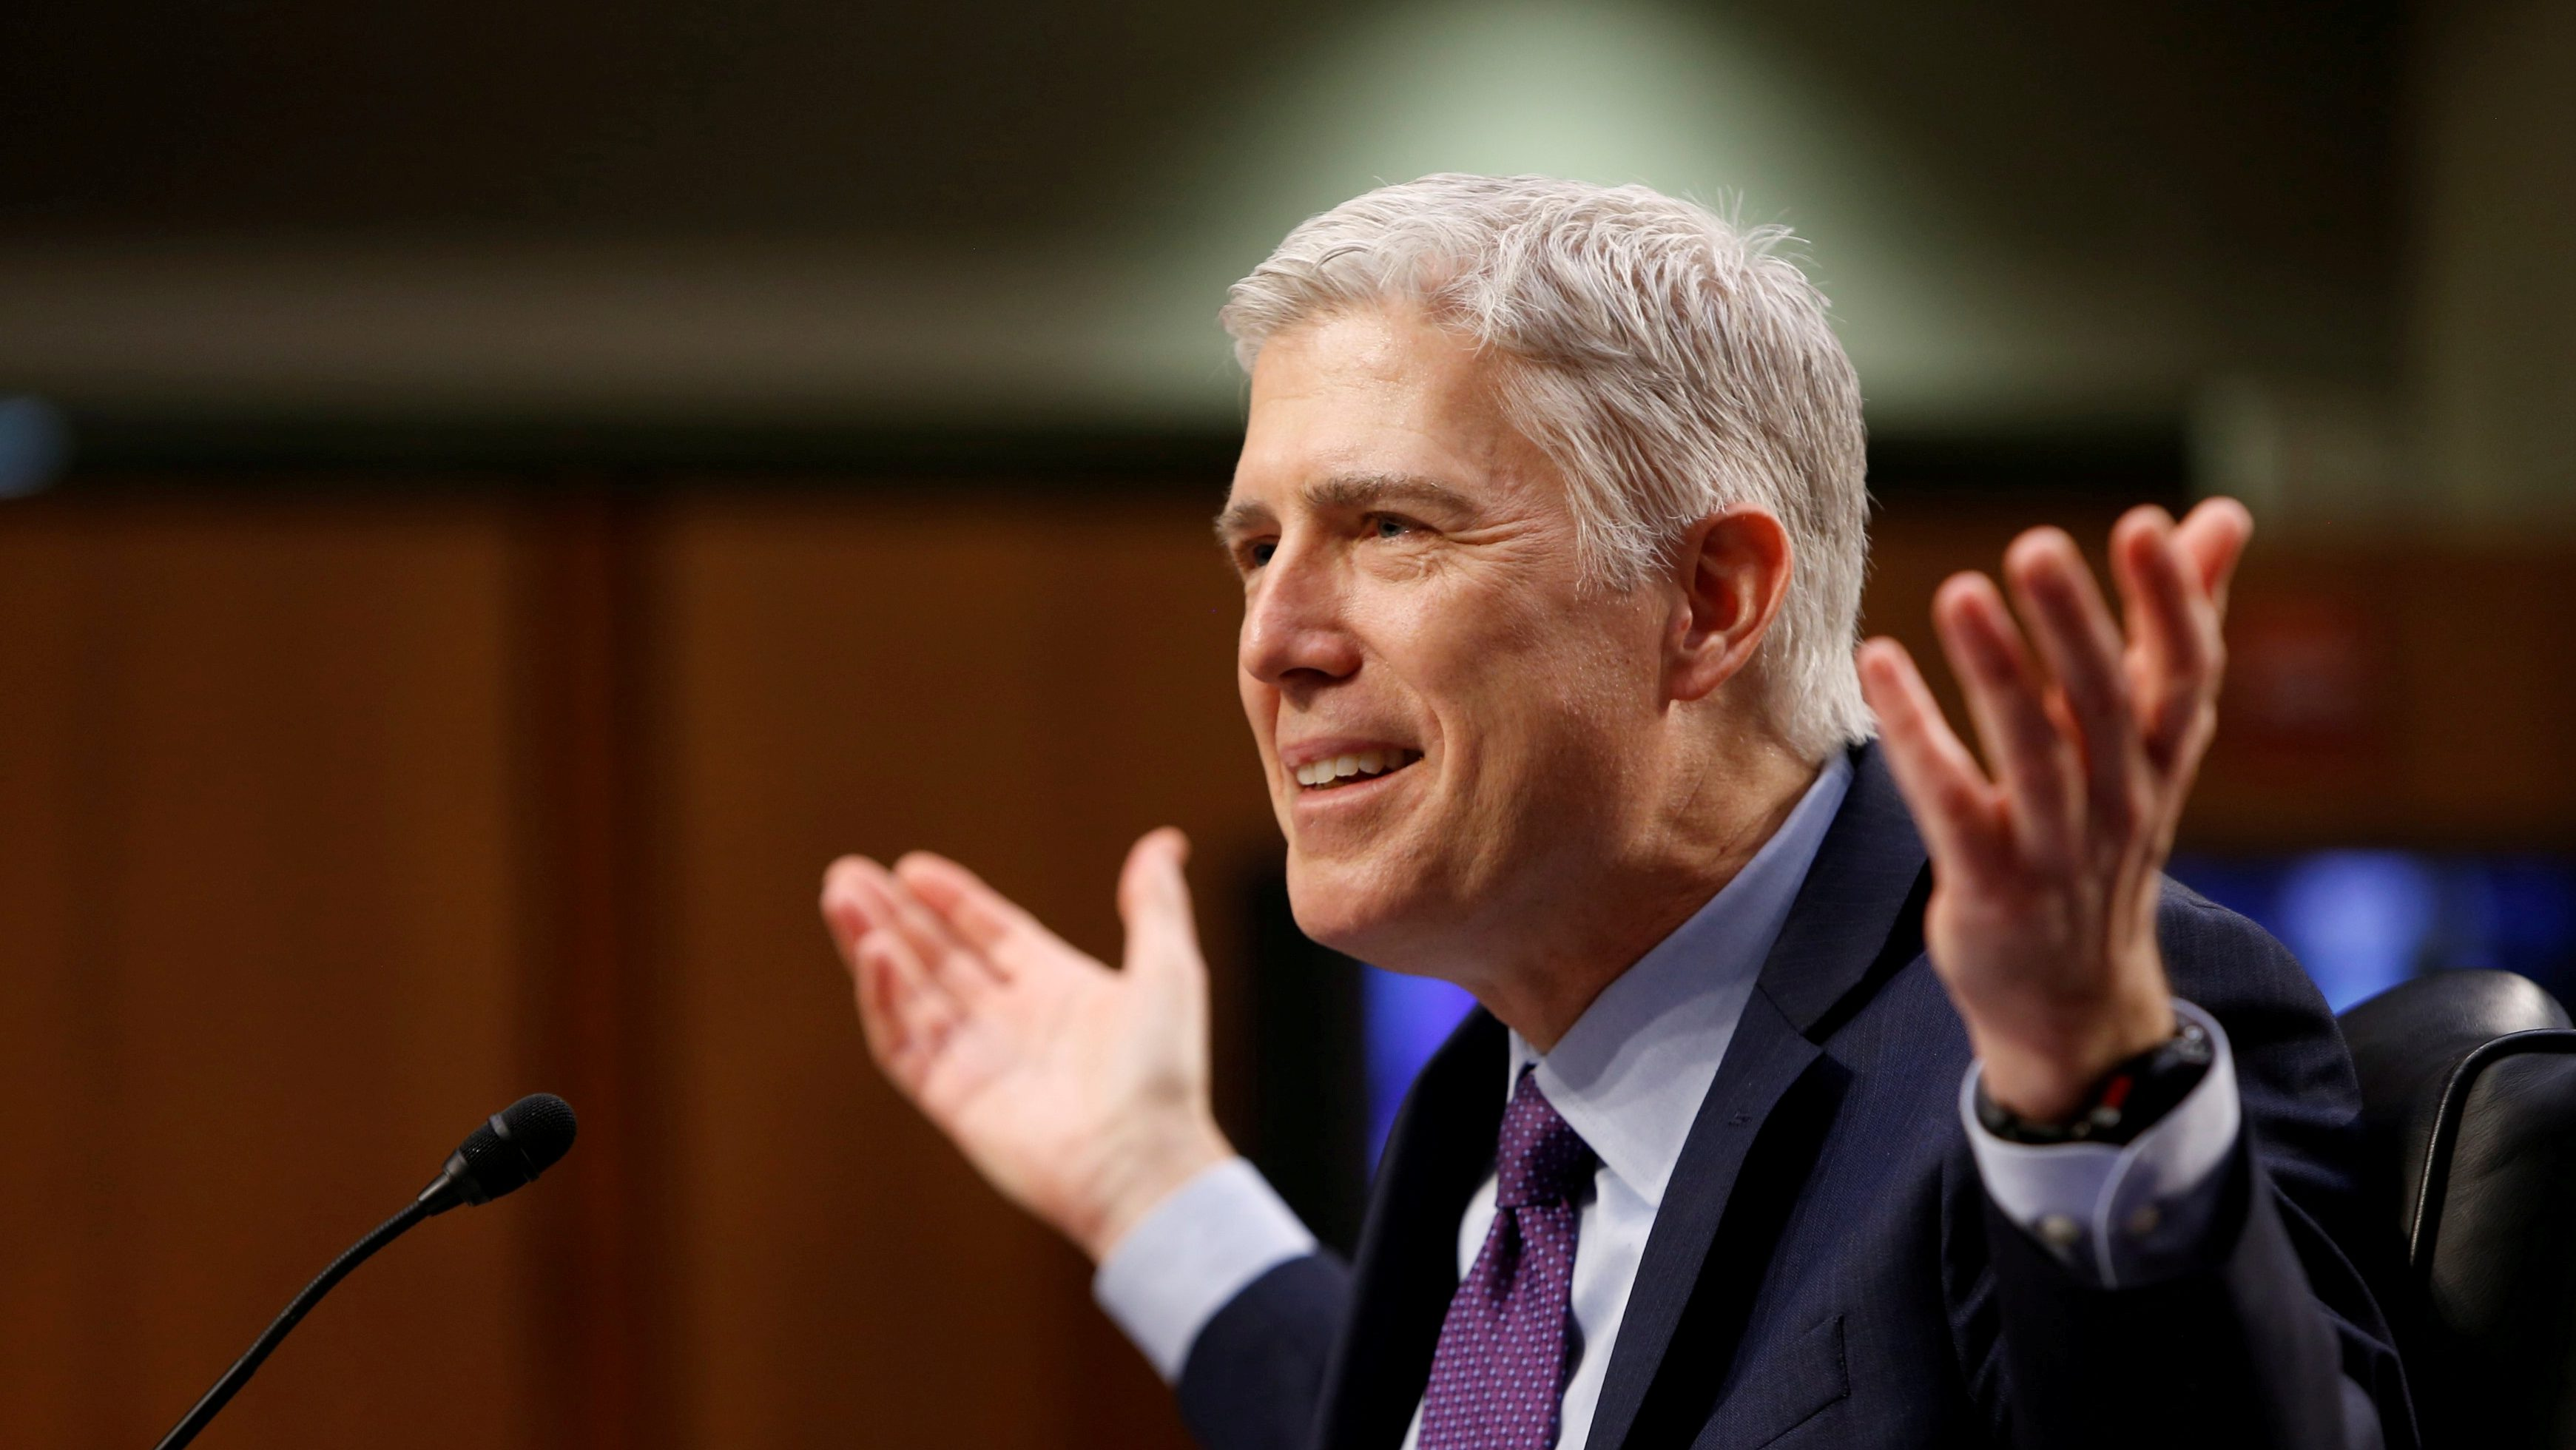 FILE PHOTO - U.S. Supreme Court nominee judge Neil Gorsuch testifies during the second day of his Senate Judiciary Committee confirmation hearing on Capitol Hill in Washington, DC, U.S. on March 21, 2017. REUTERS/Joshua Roberts/File Photo - RTX344I6